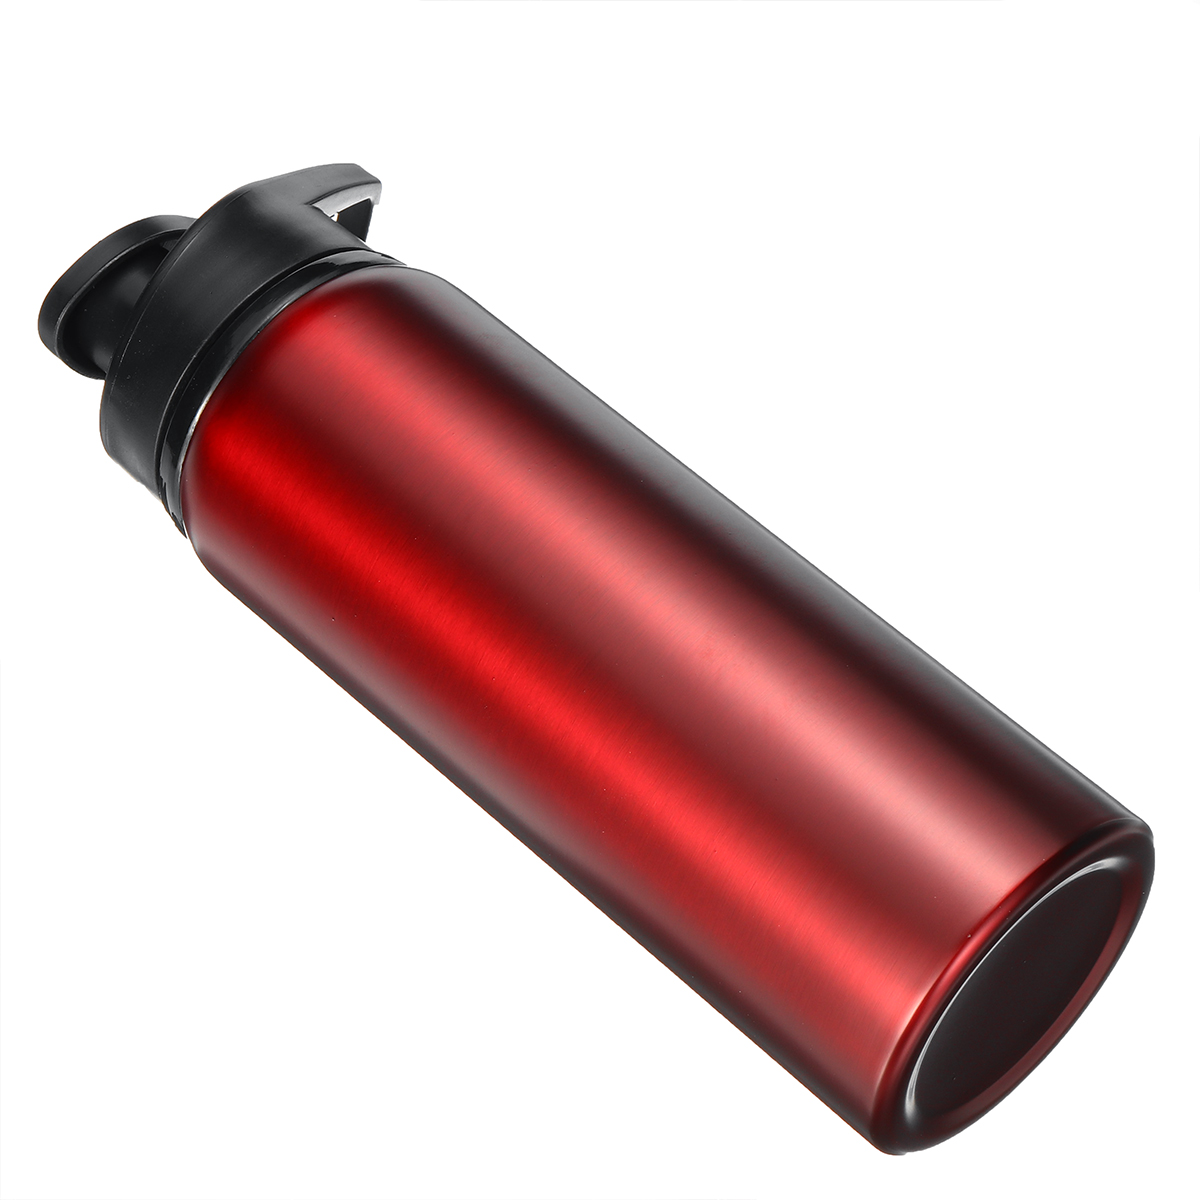 700ml Stainless Steel Outdoor Sport Camp Direct Drinking Water Bottle Drink